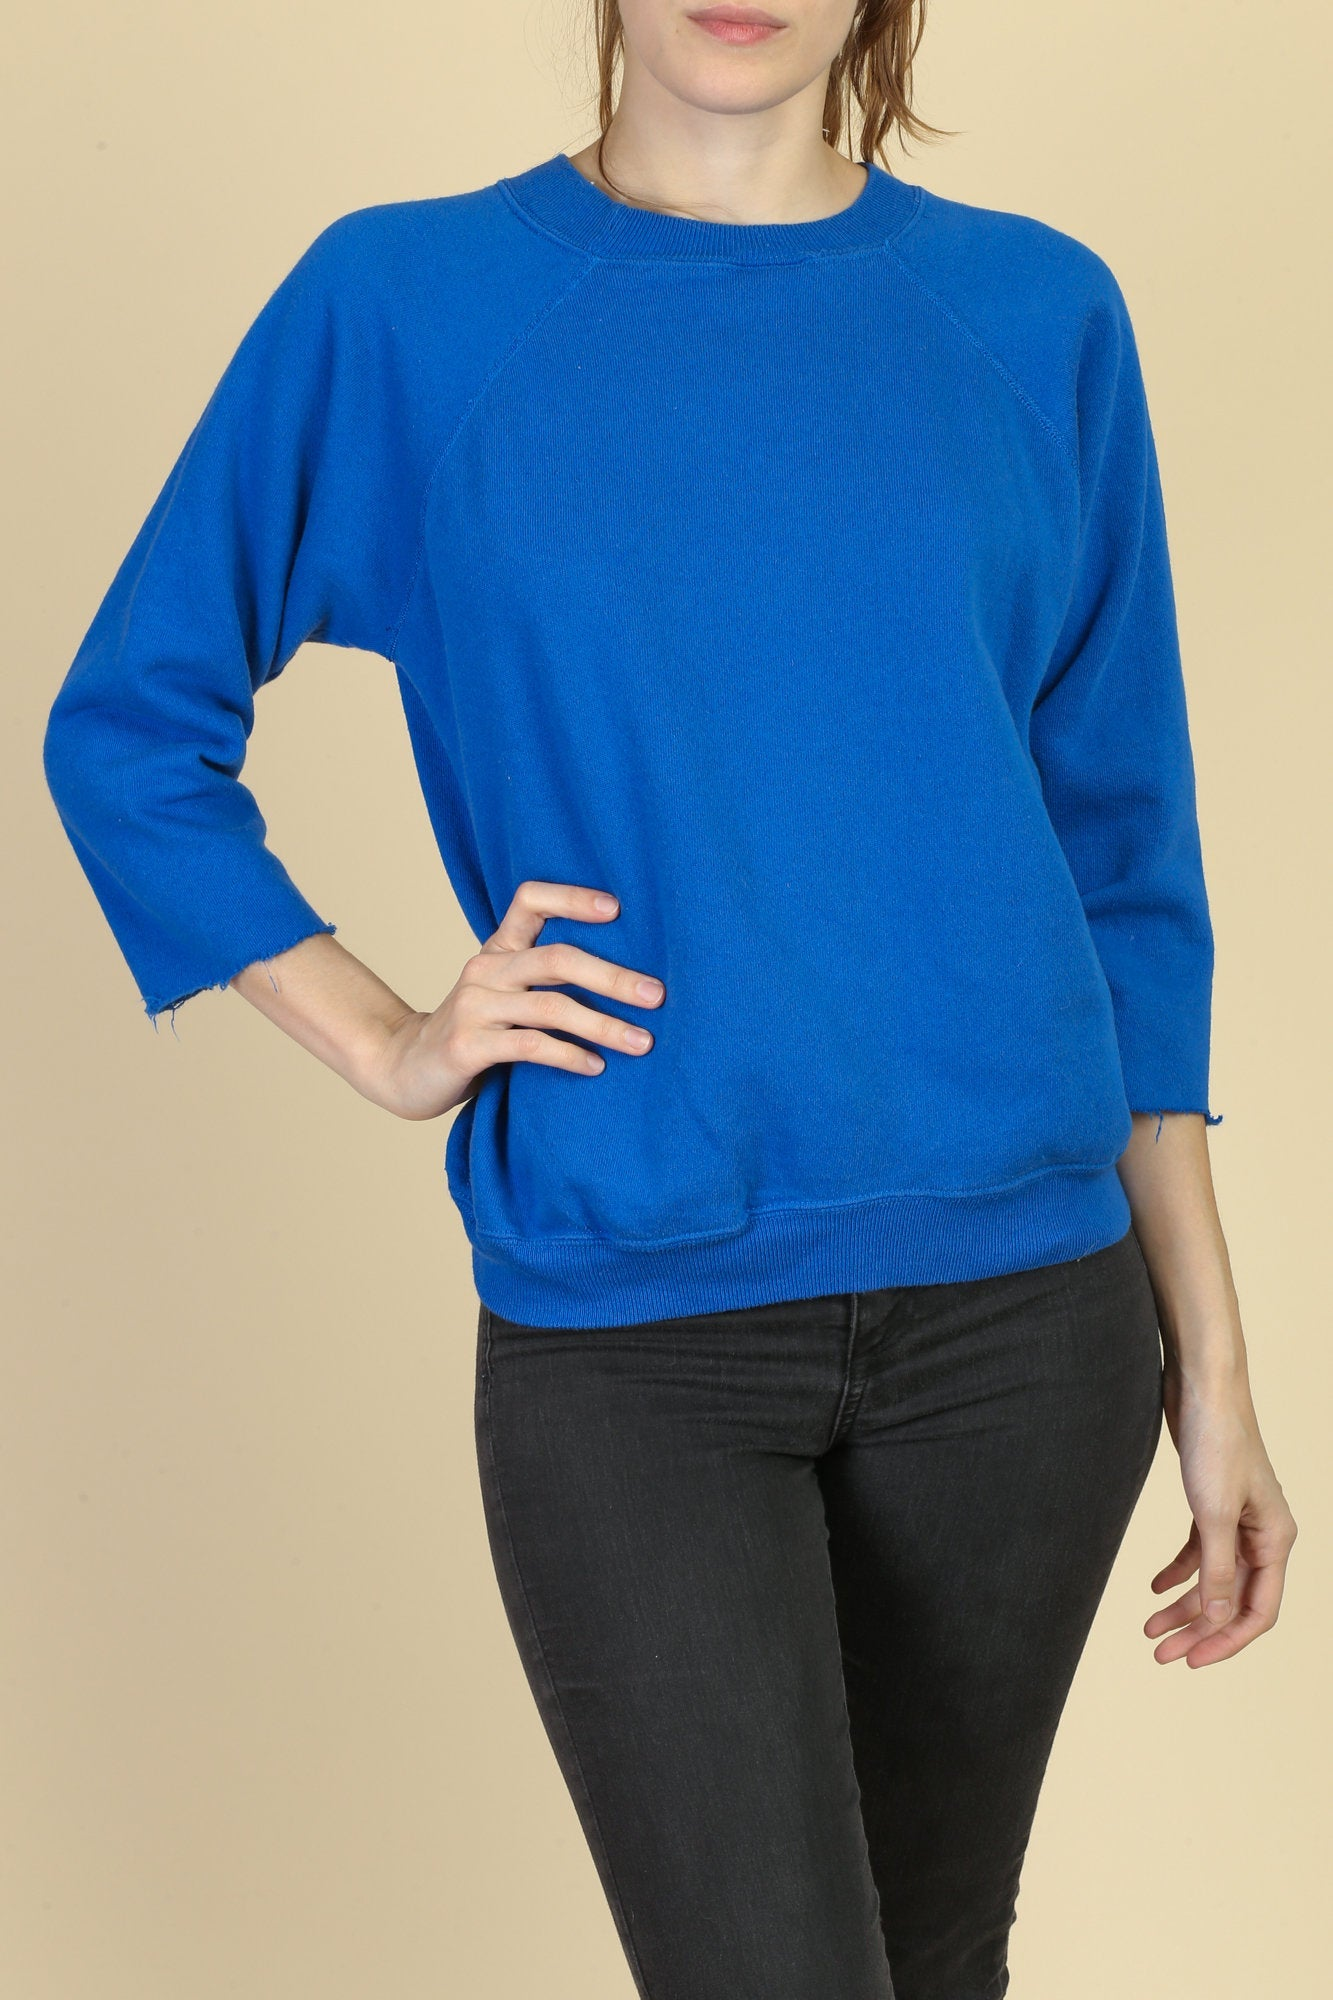 80s 3/4 Sleeve Cut Off Sweatshirt - Large